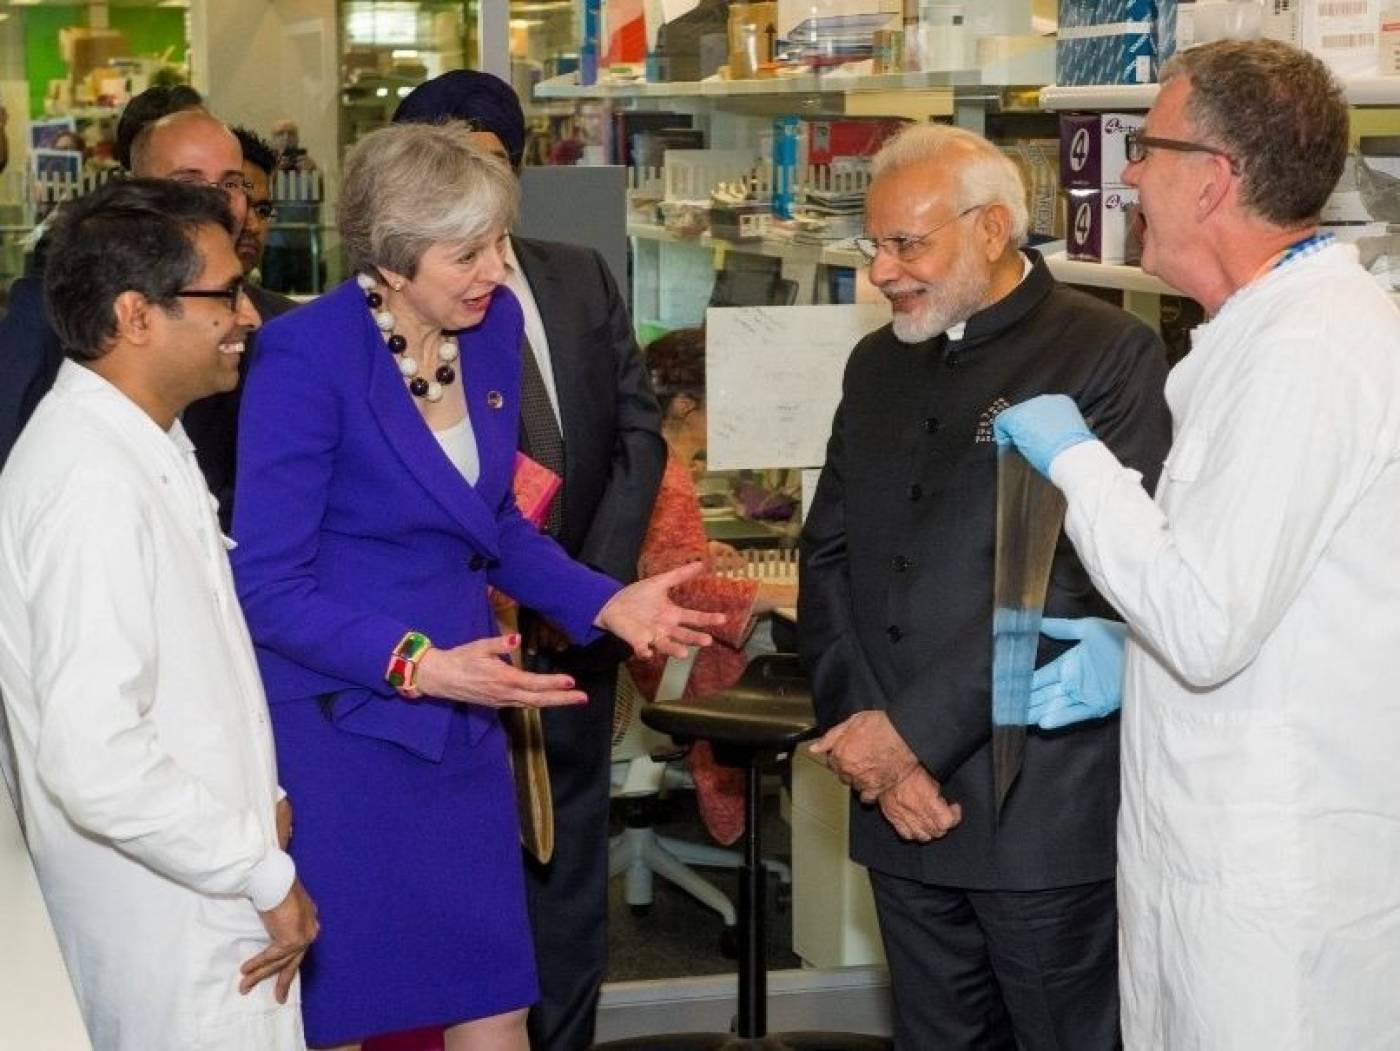 Prime Ministers Theresa May and Nahendra Modi visit the Crick